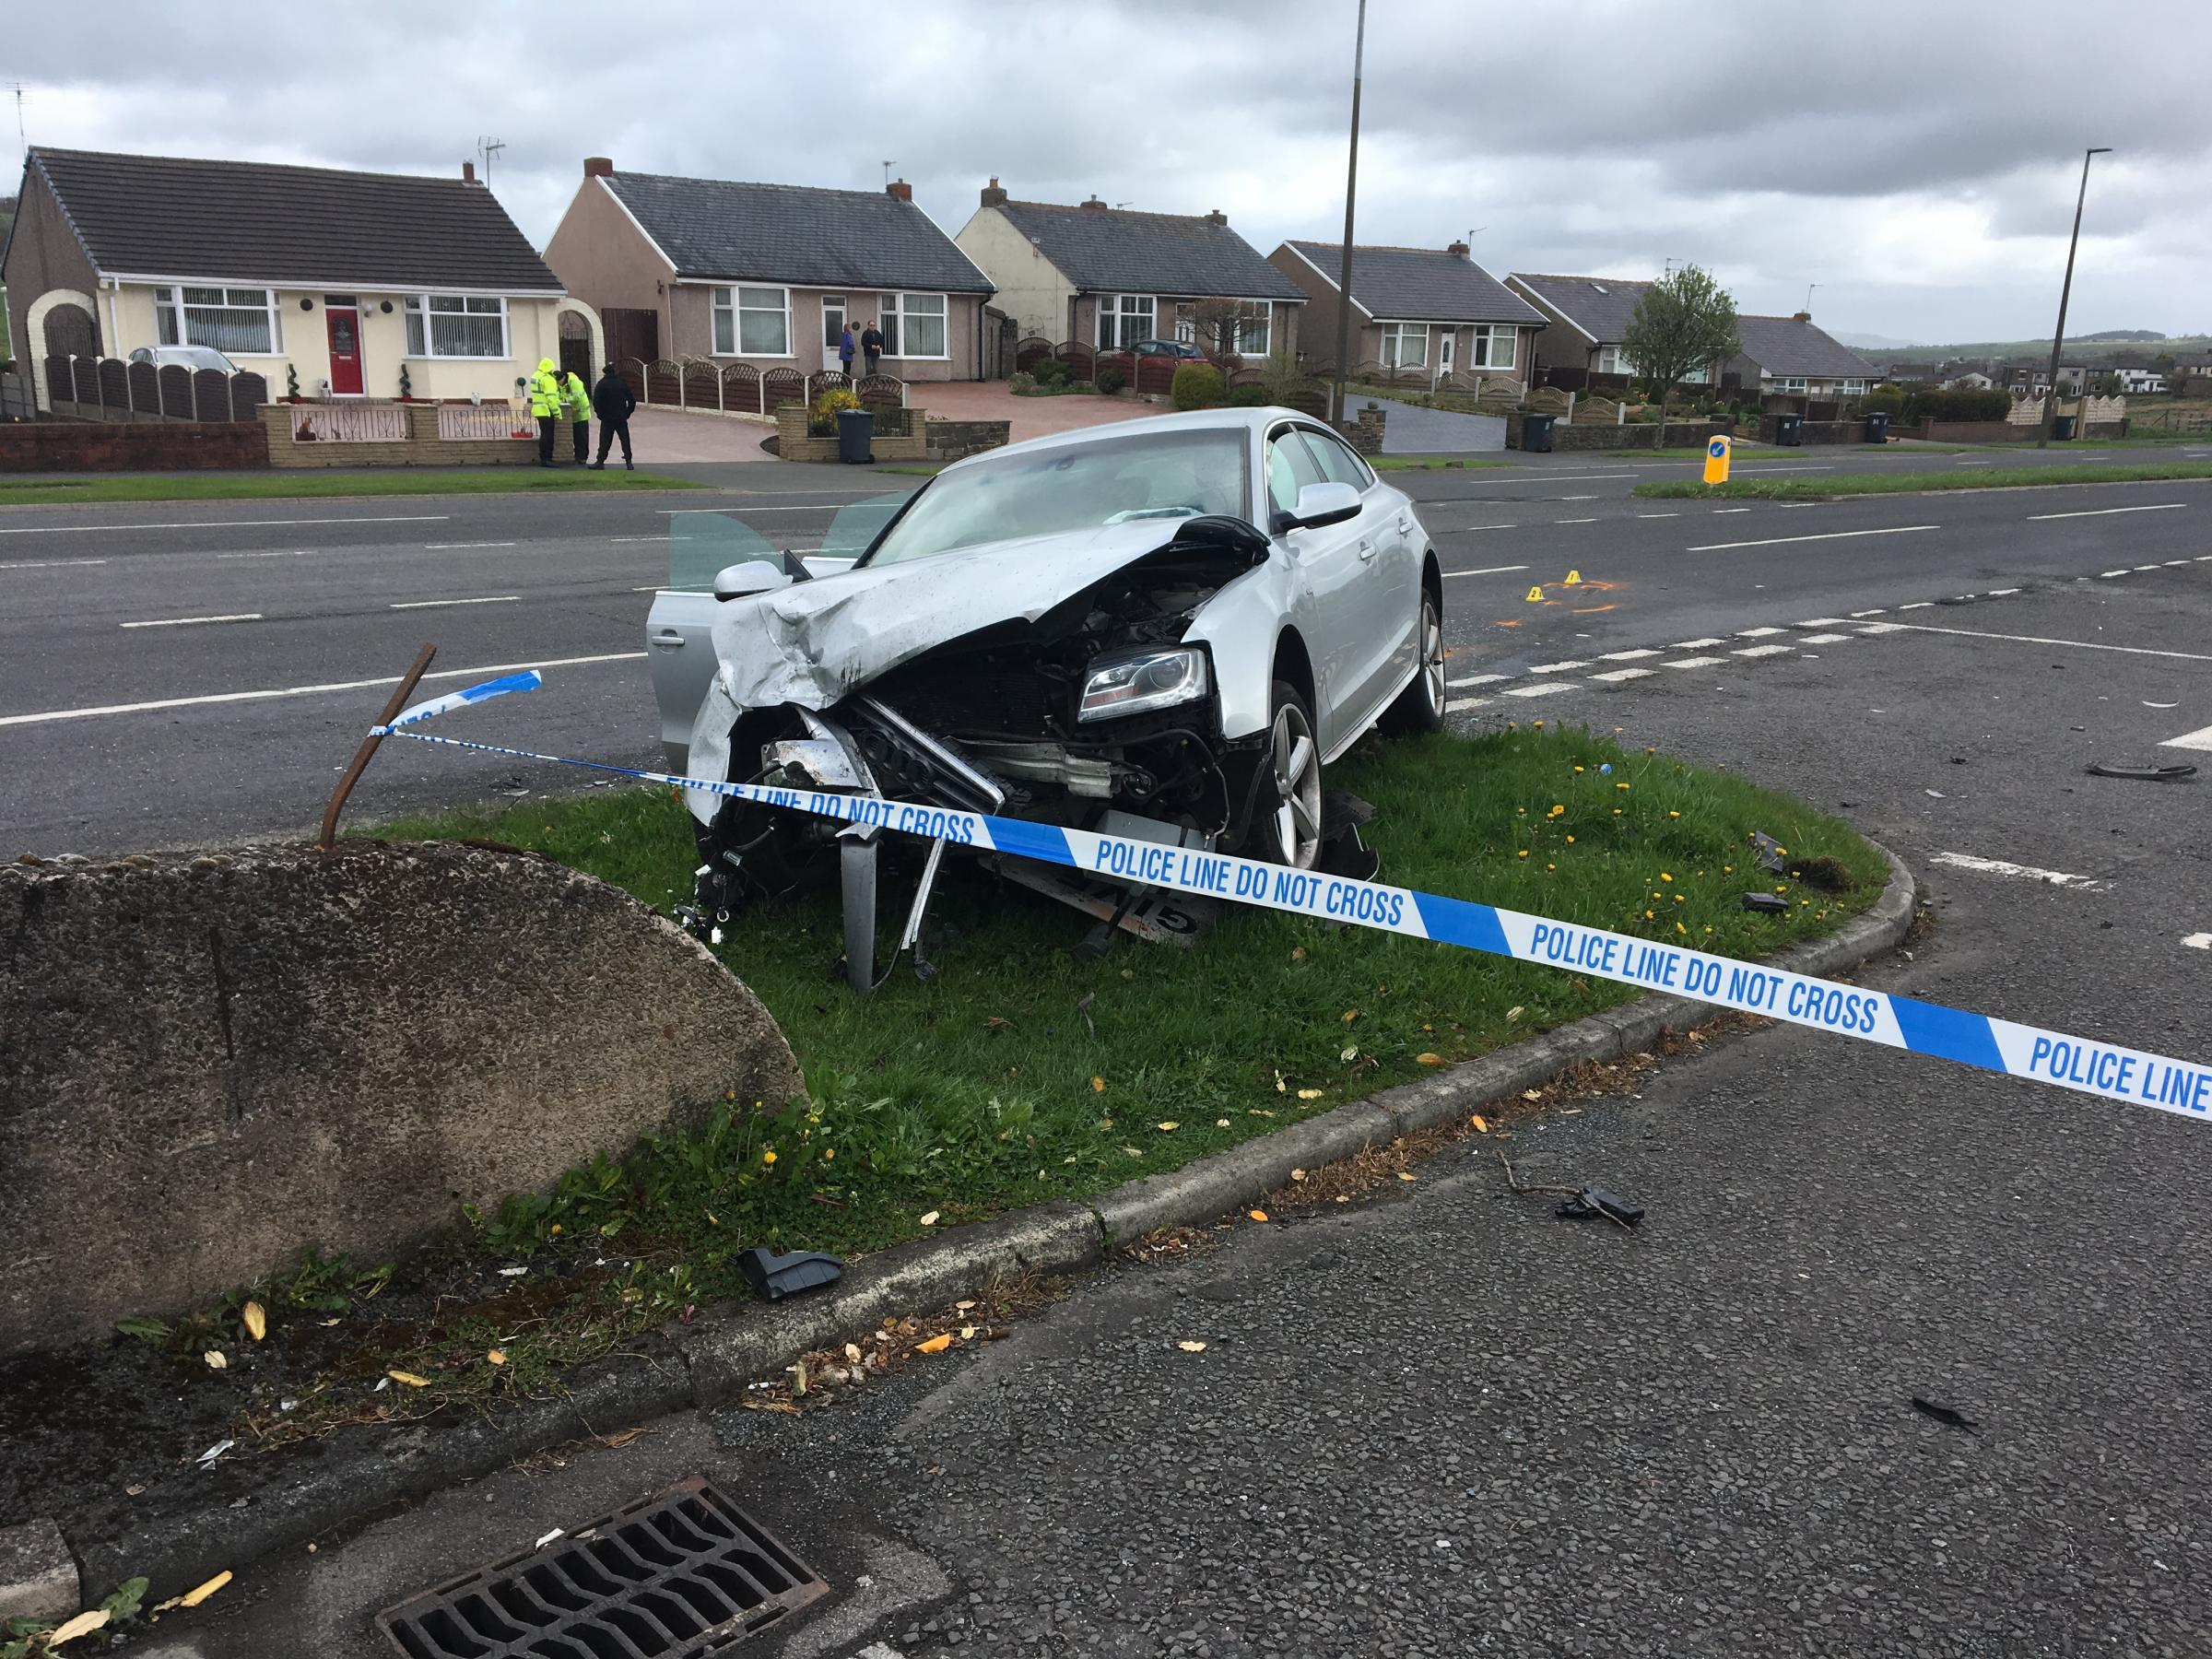 Road blocked after 'serious' crash in Blackburn